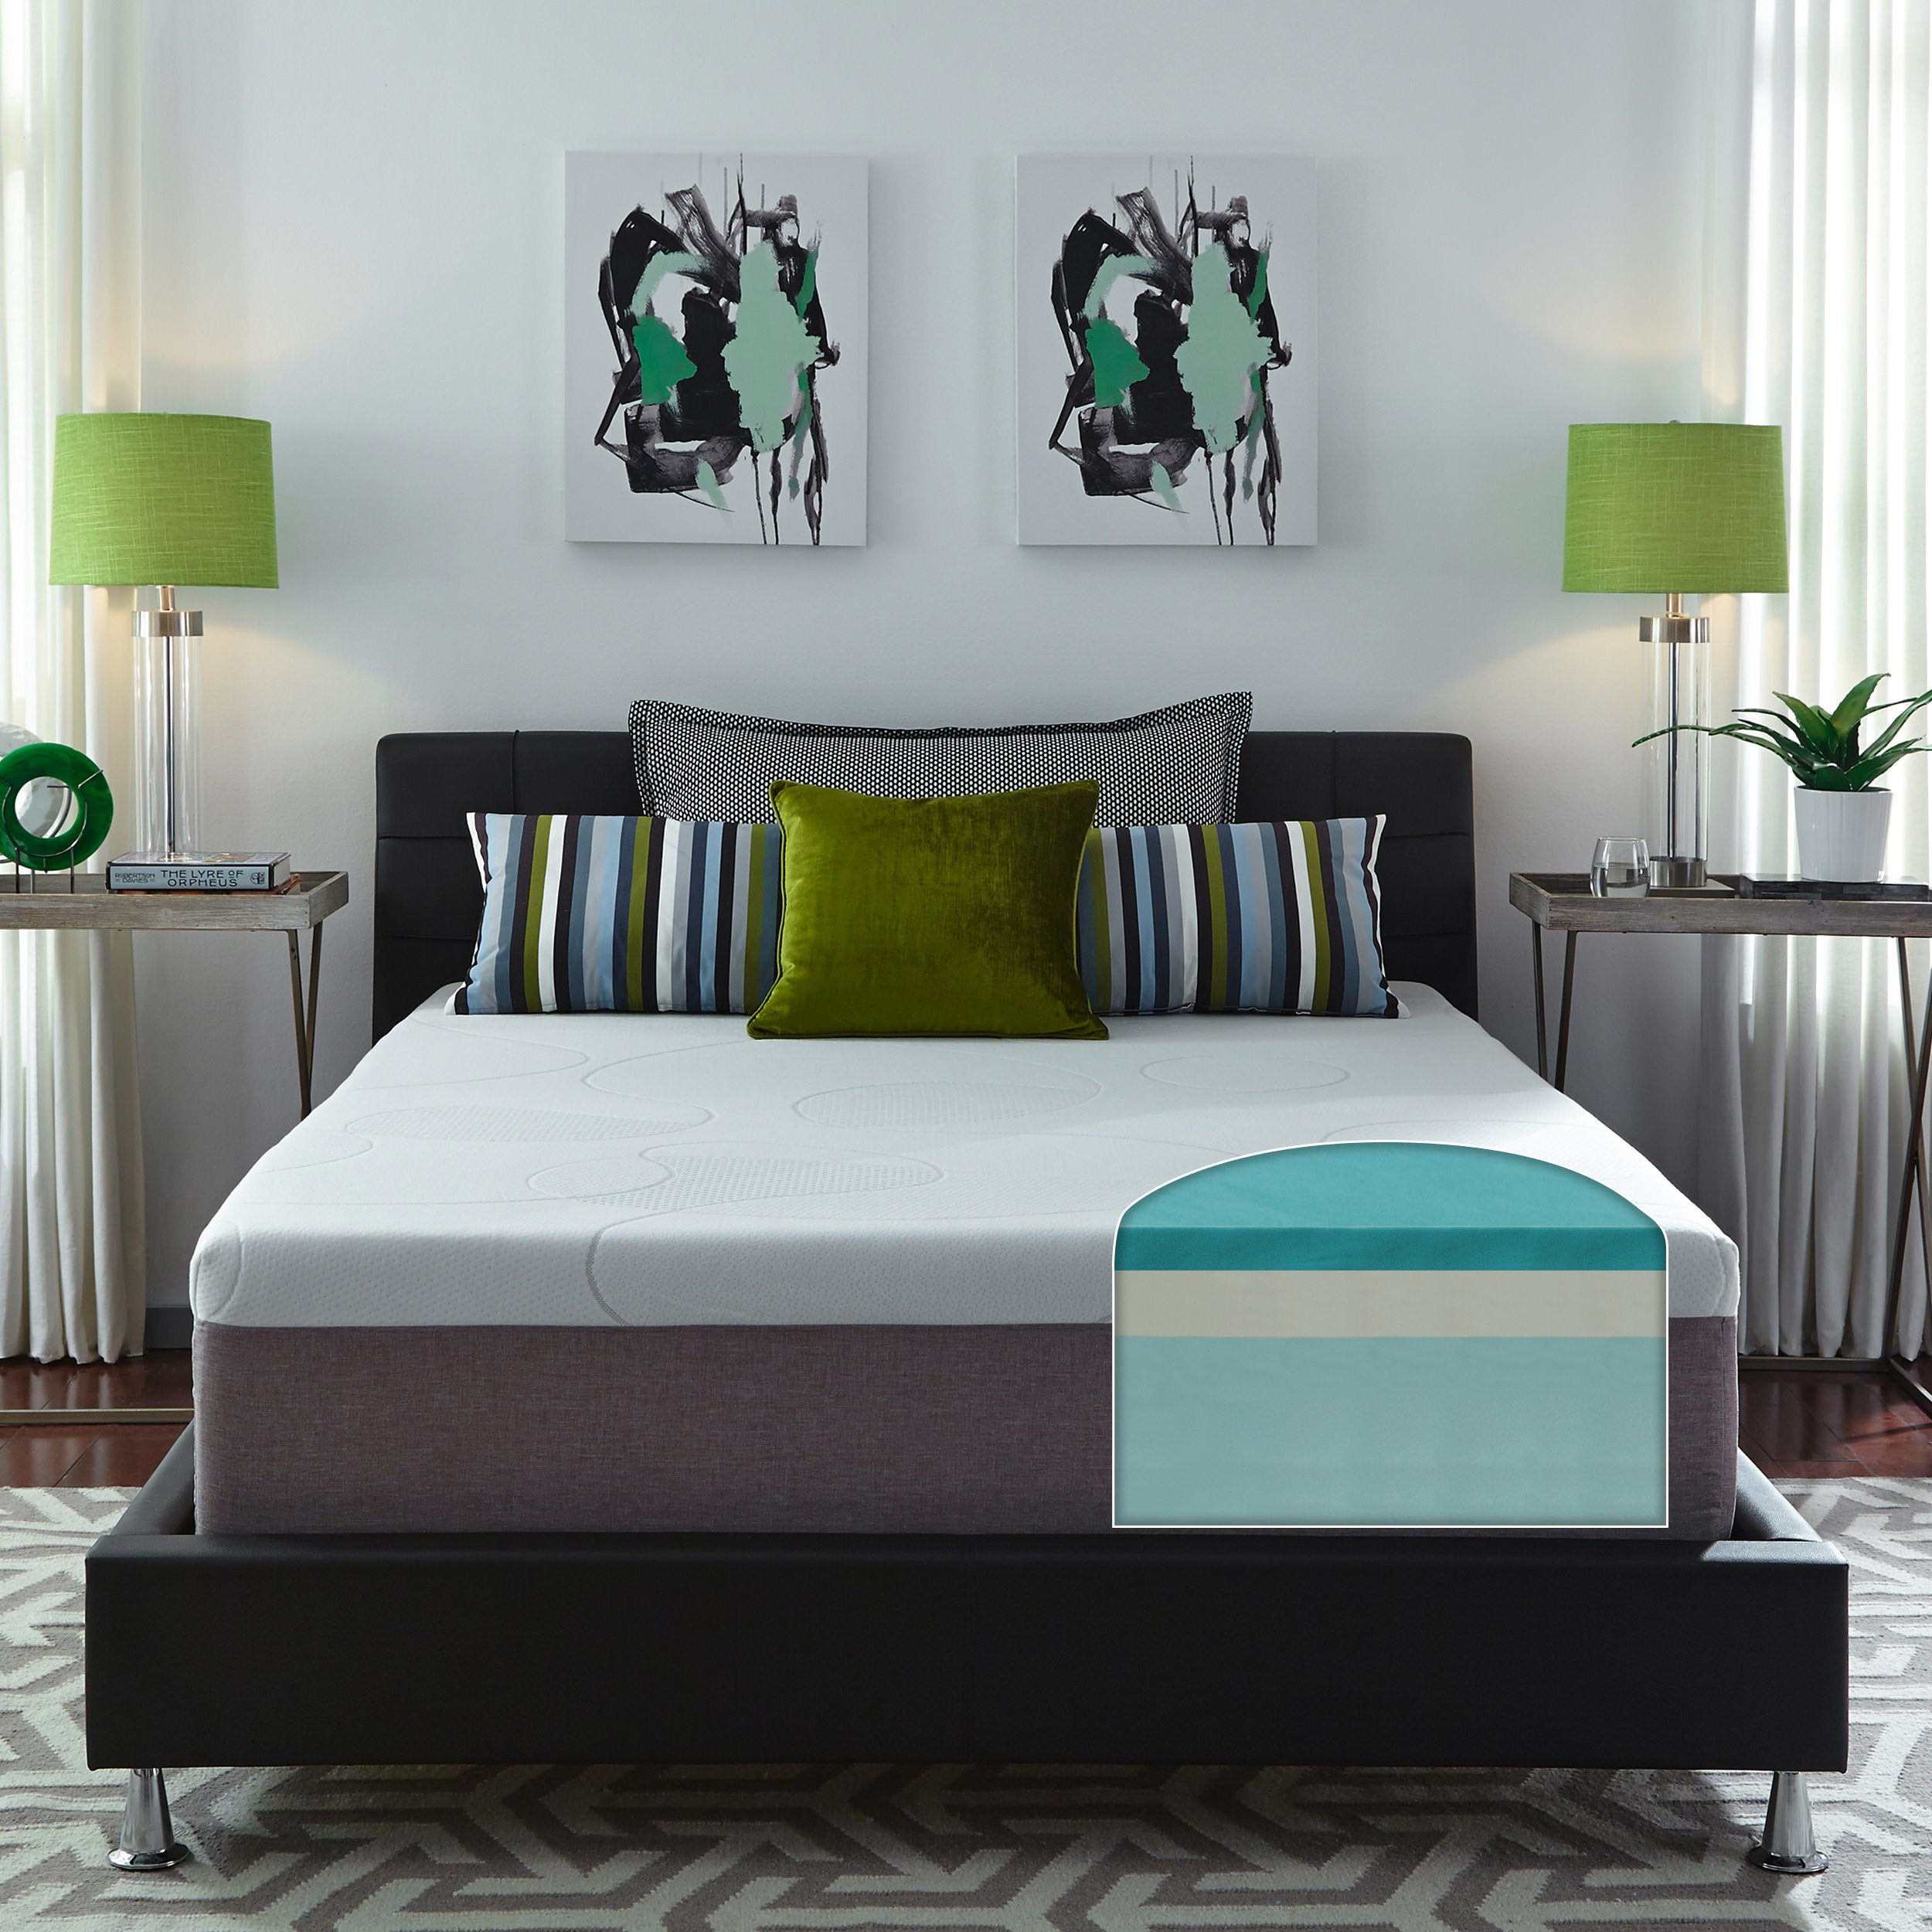 reviews furniture pedic mattress ideas comforter a comfort decor ther modern home interior design with elegant on